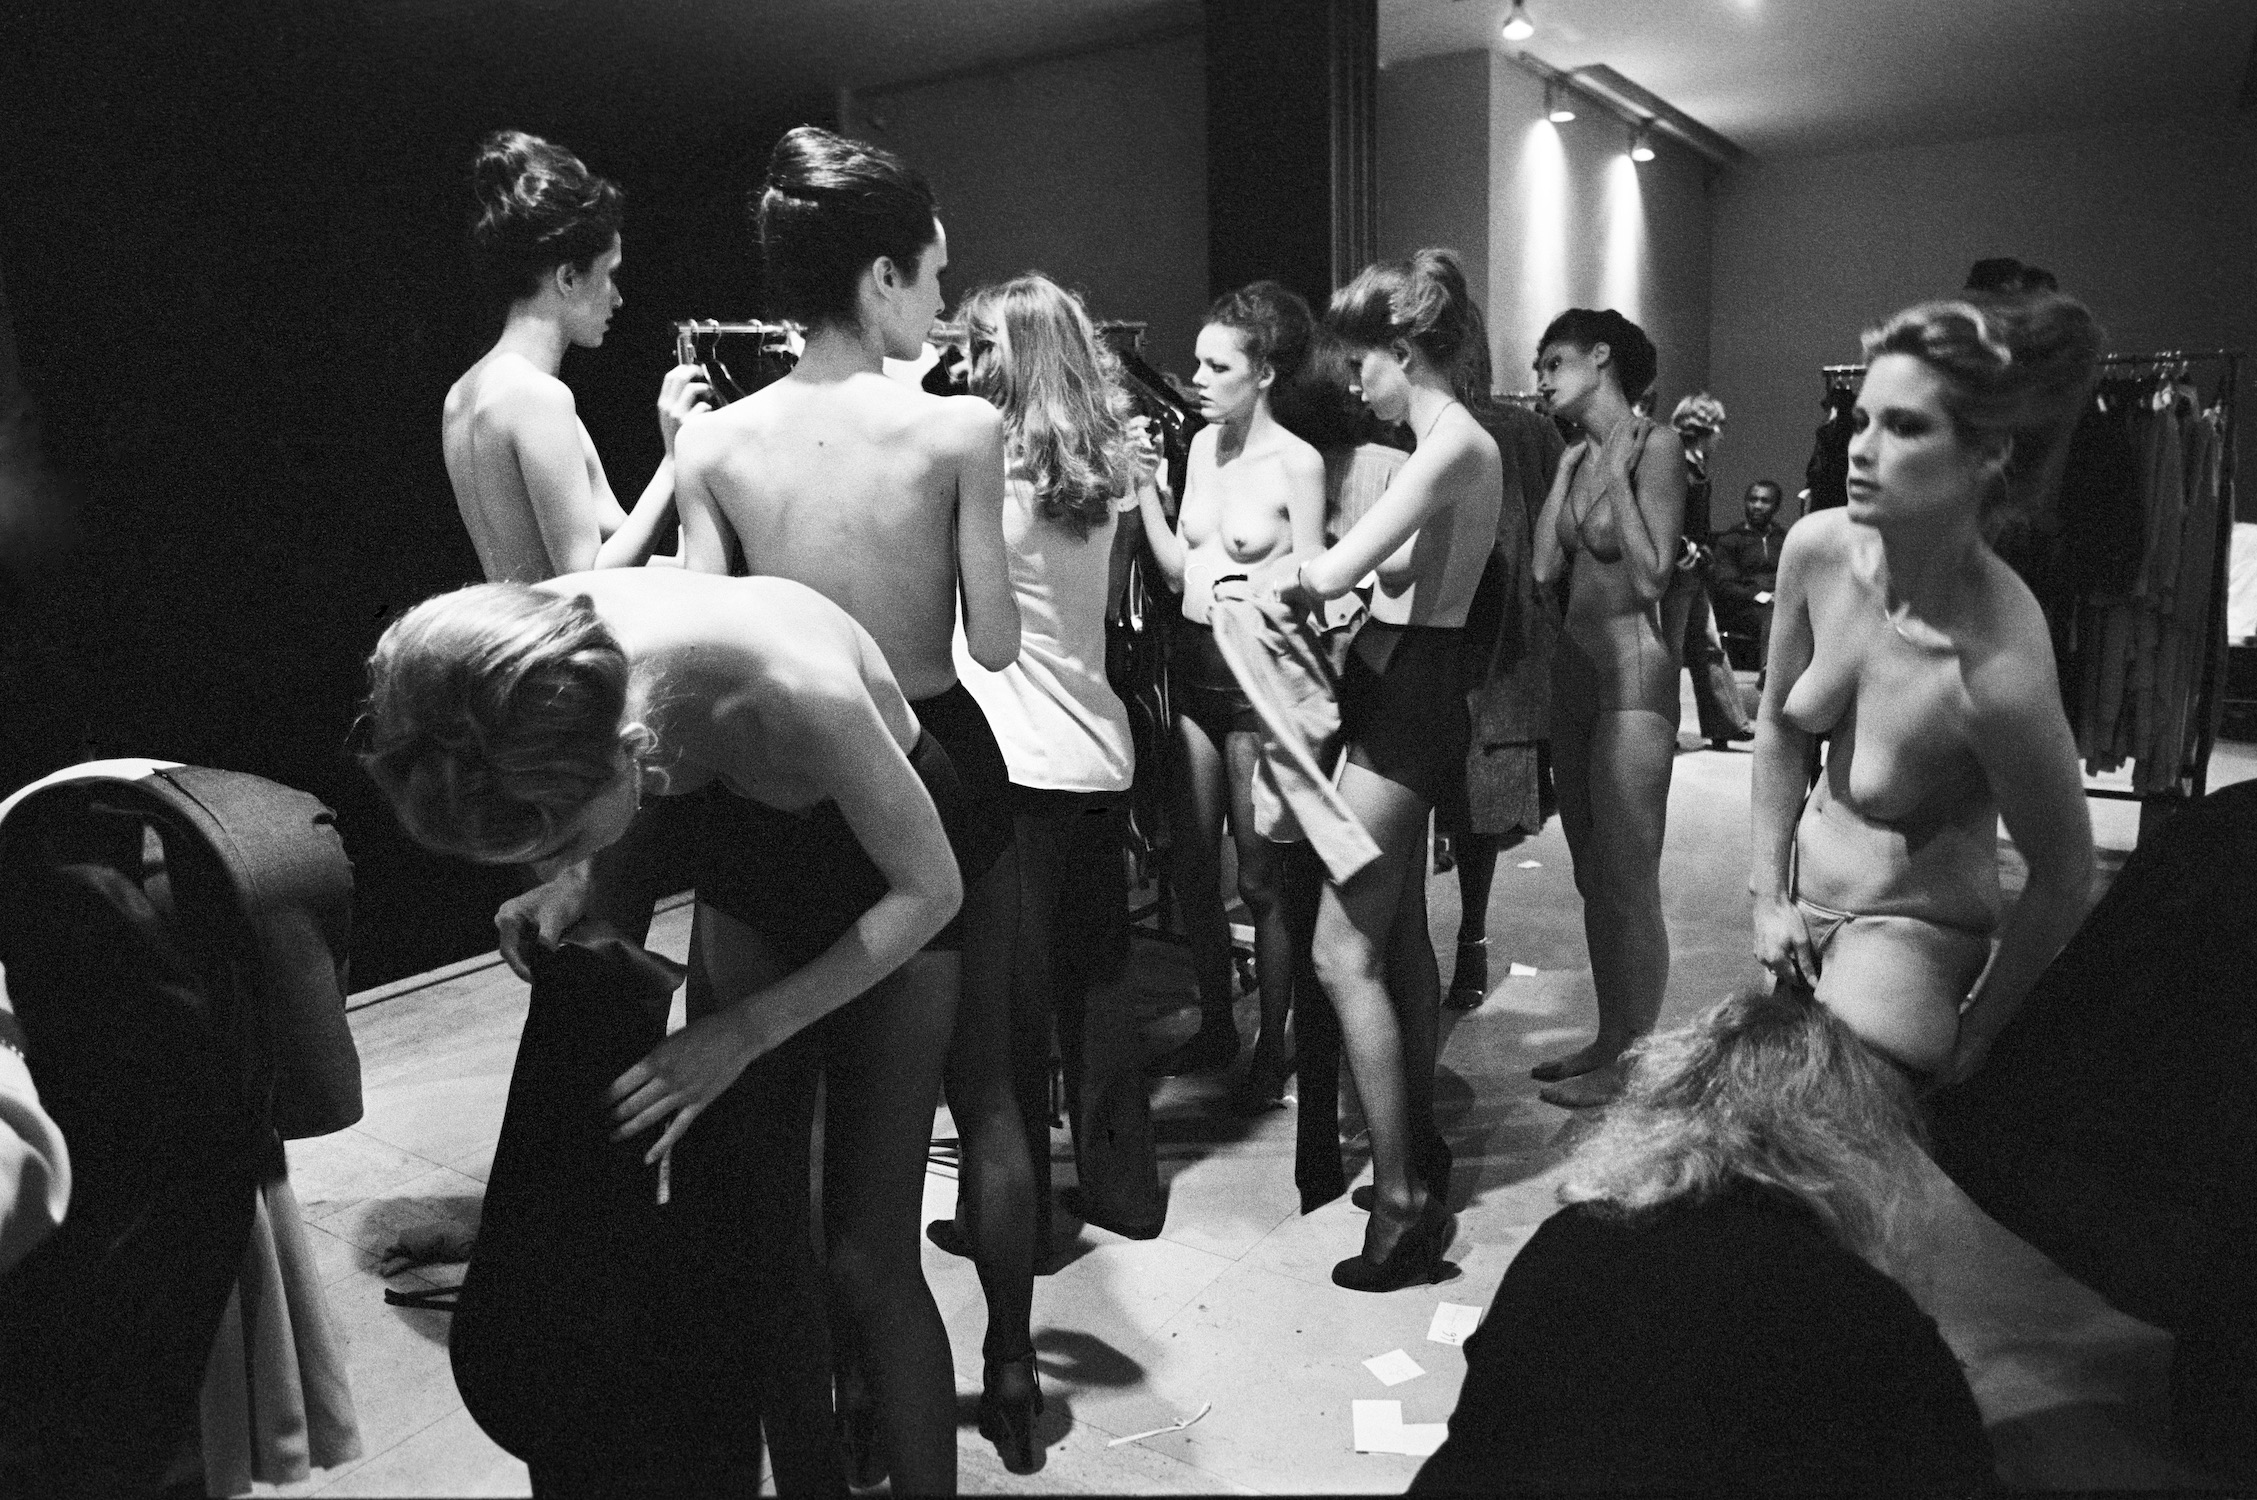 In the Dressingroom, Paris 1978